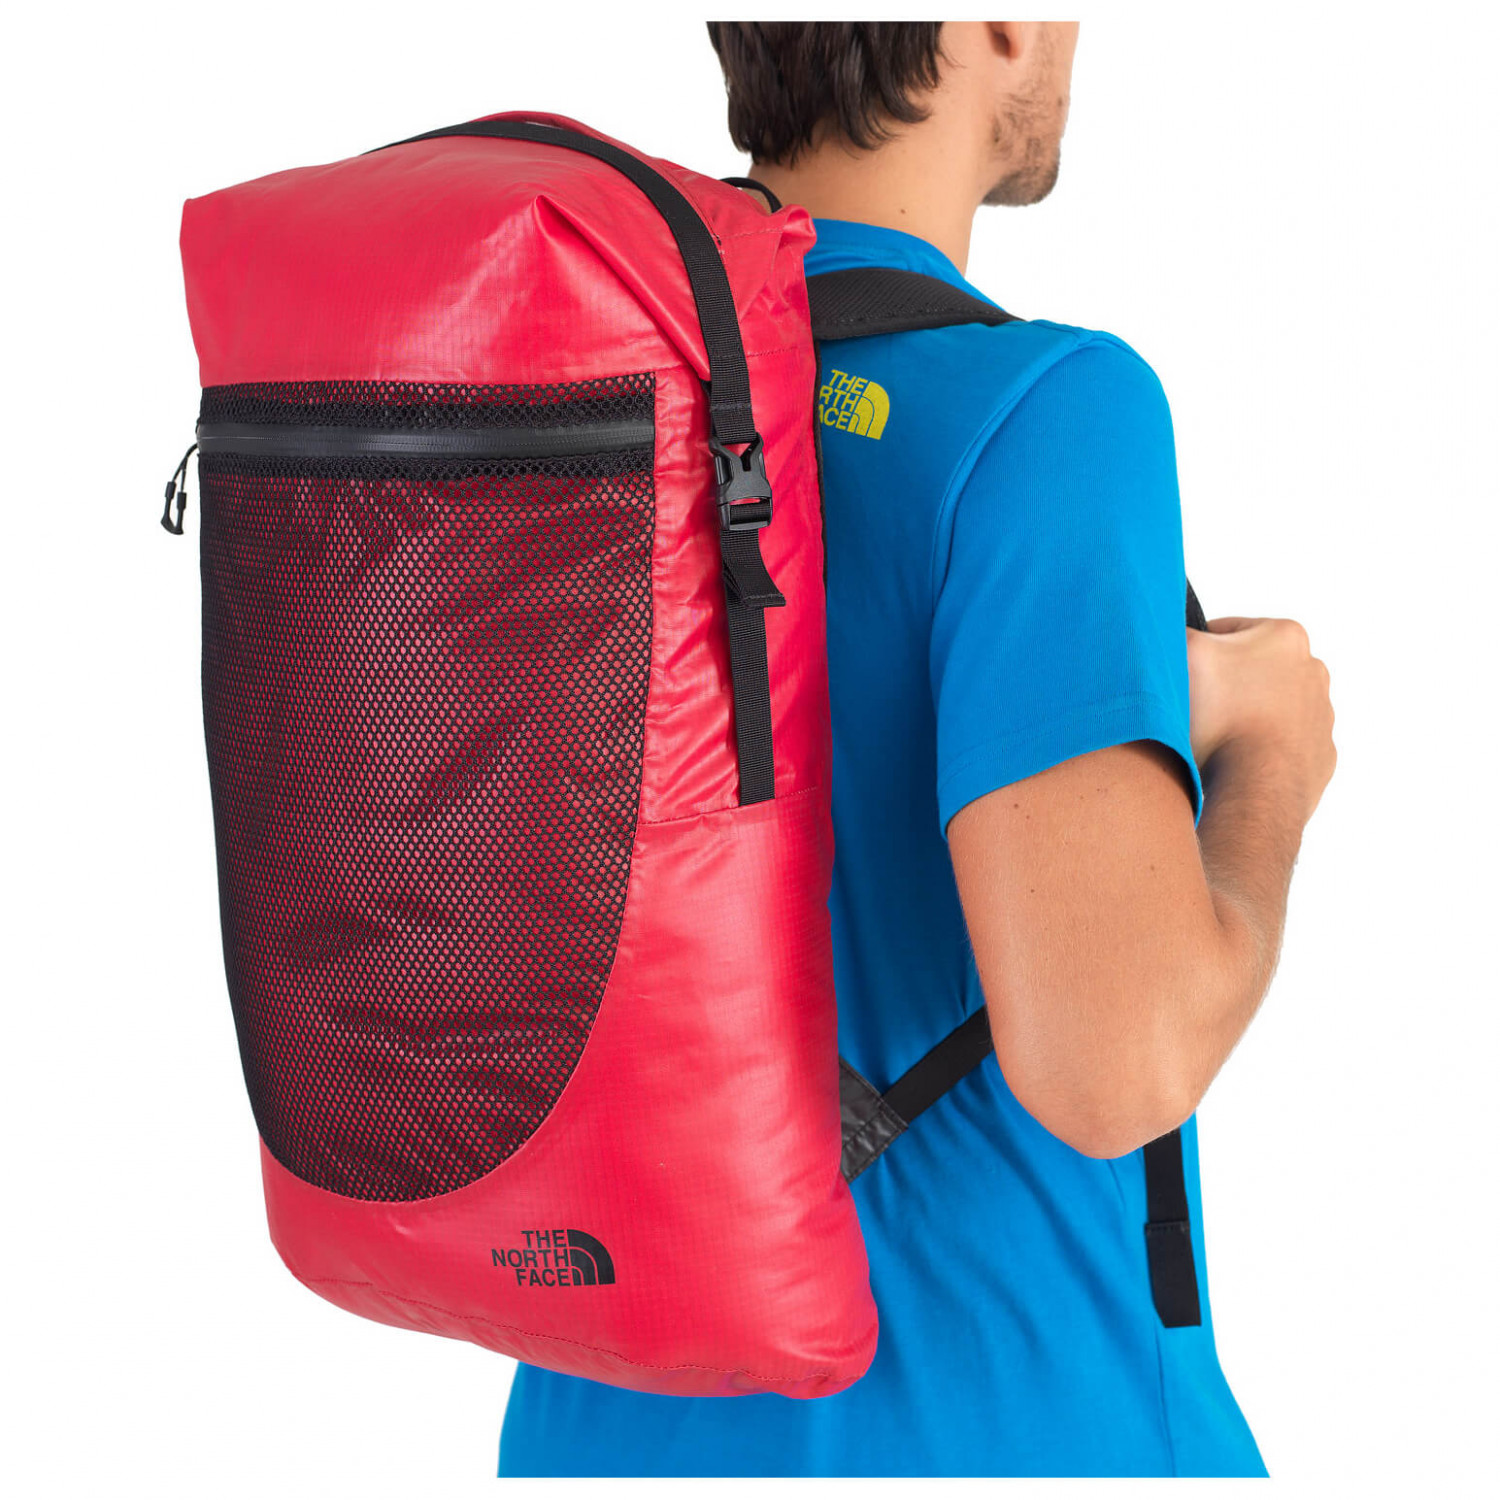 The North Face - Waterproof Daypack - Daypack ... 4c39e90db27c